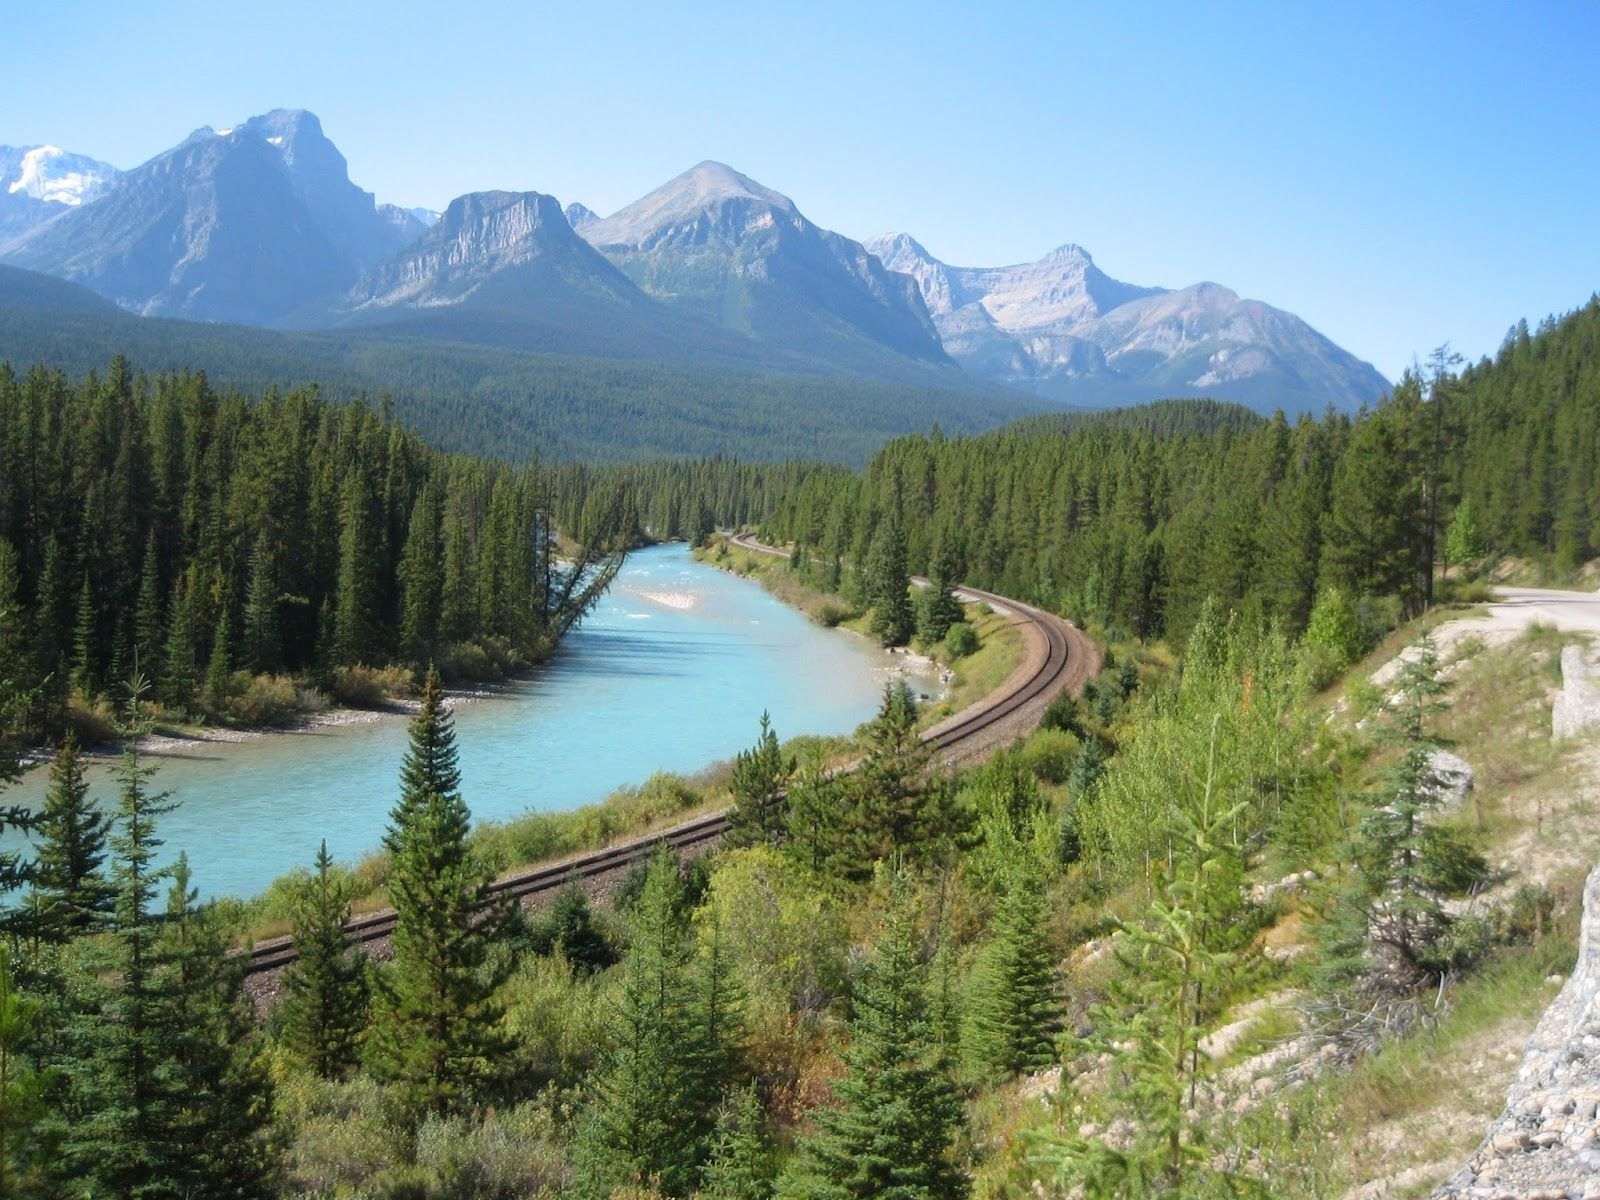 Tur til Canada - British Columbia: Lake Louise og Bow Vally Parkway